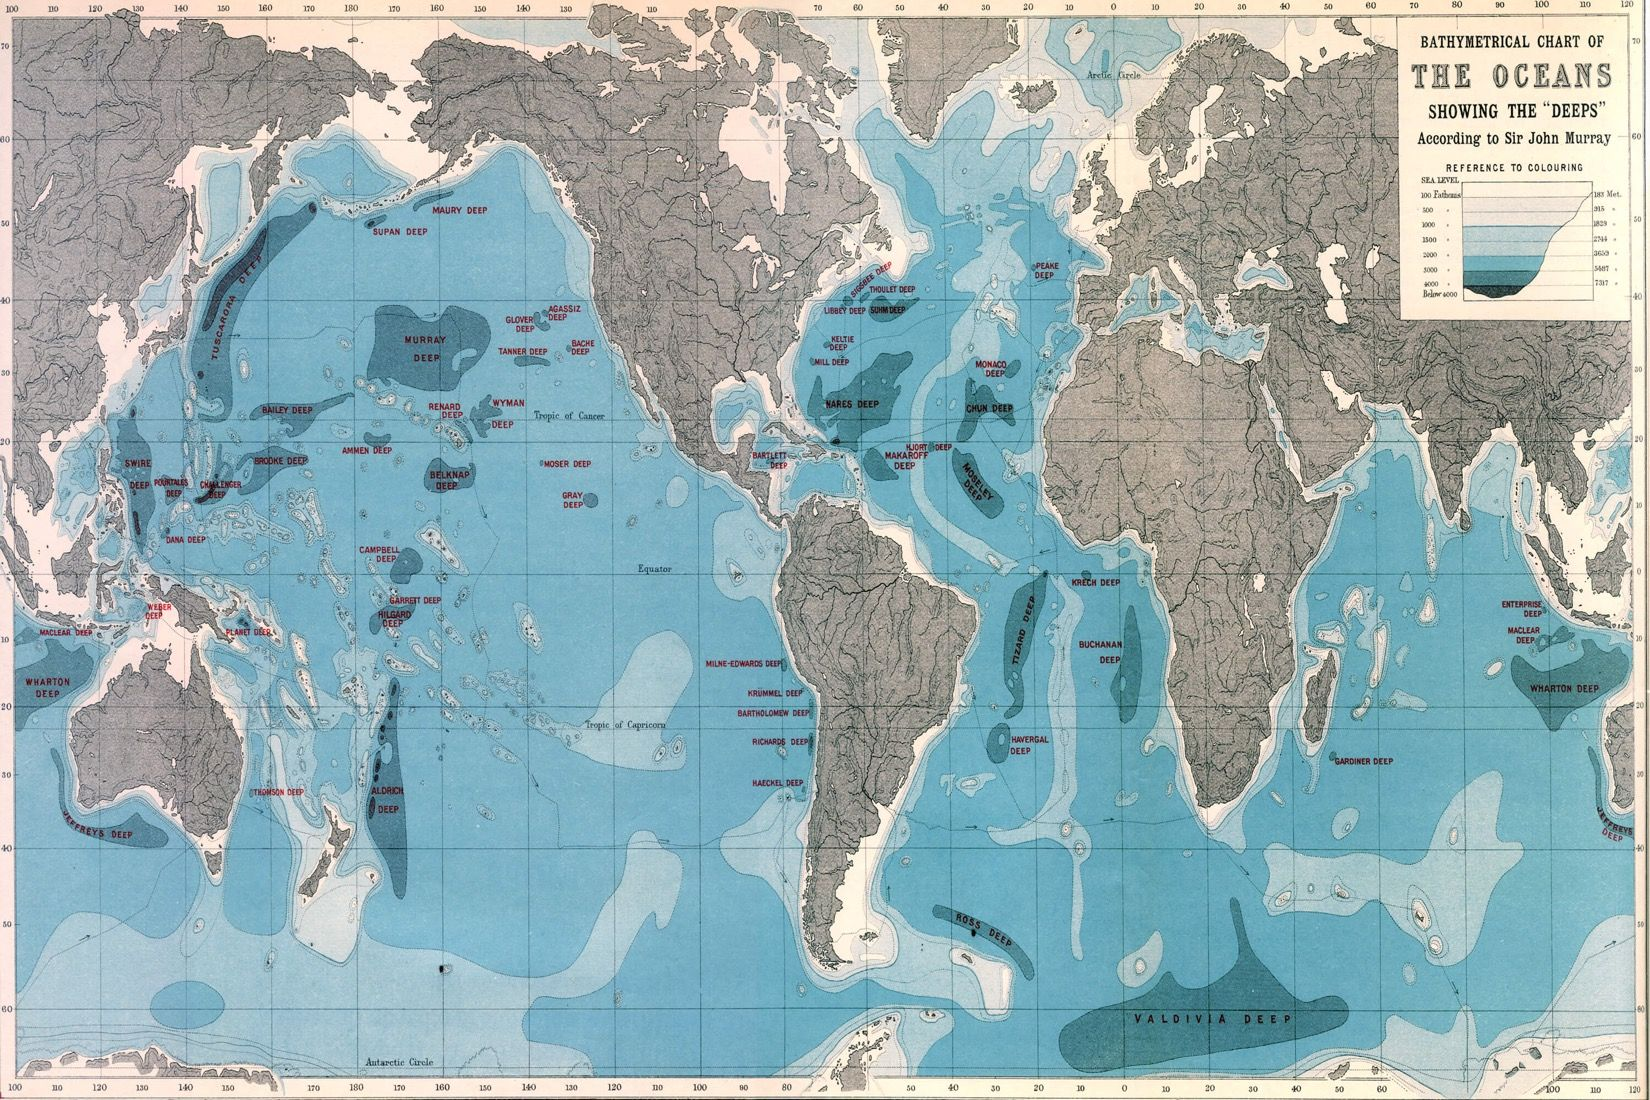 World ocean depths map wallpaper mural ocean depth design world ocean depths map mural custom made to suit your wall size by the uks gumiabroncs Choice Image